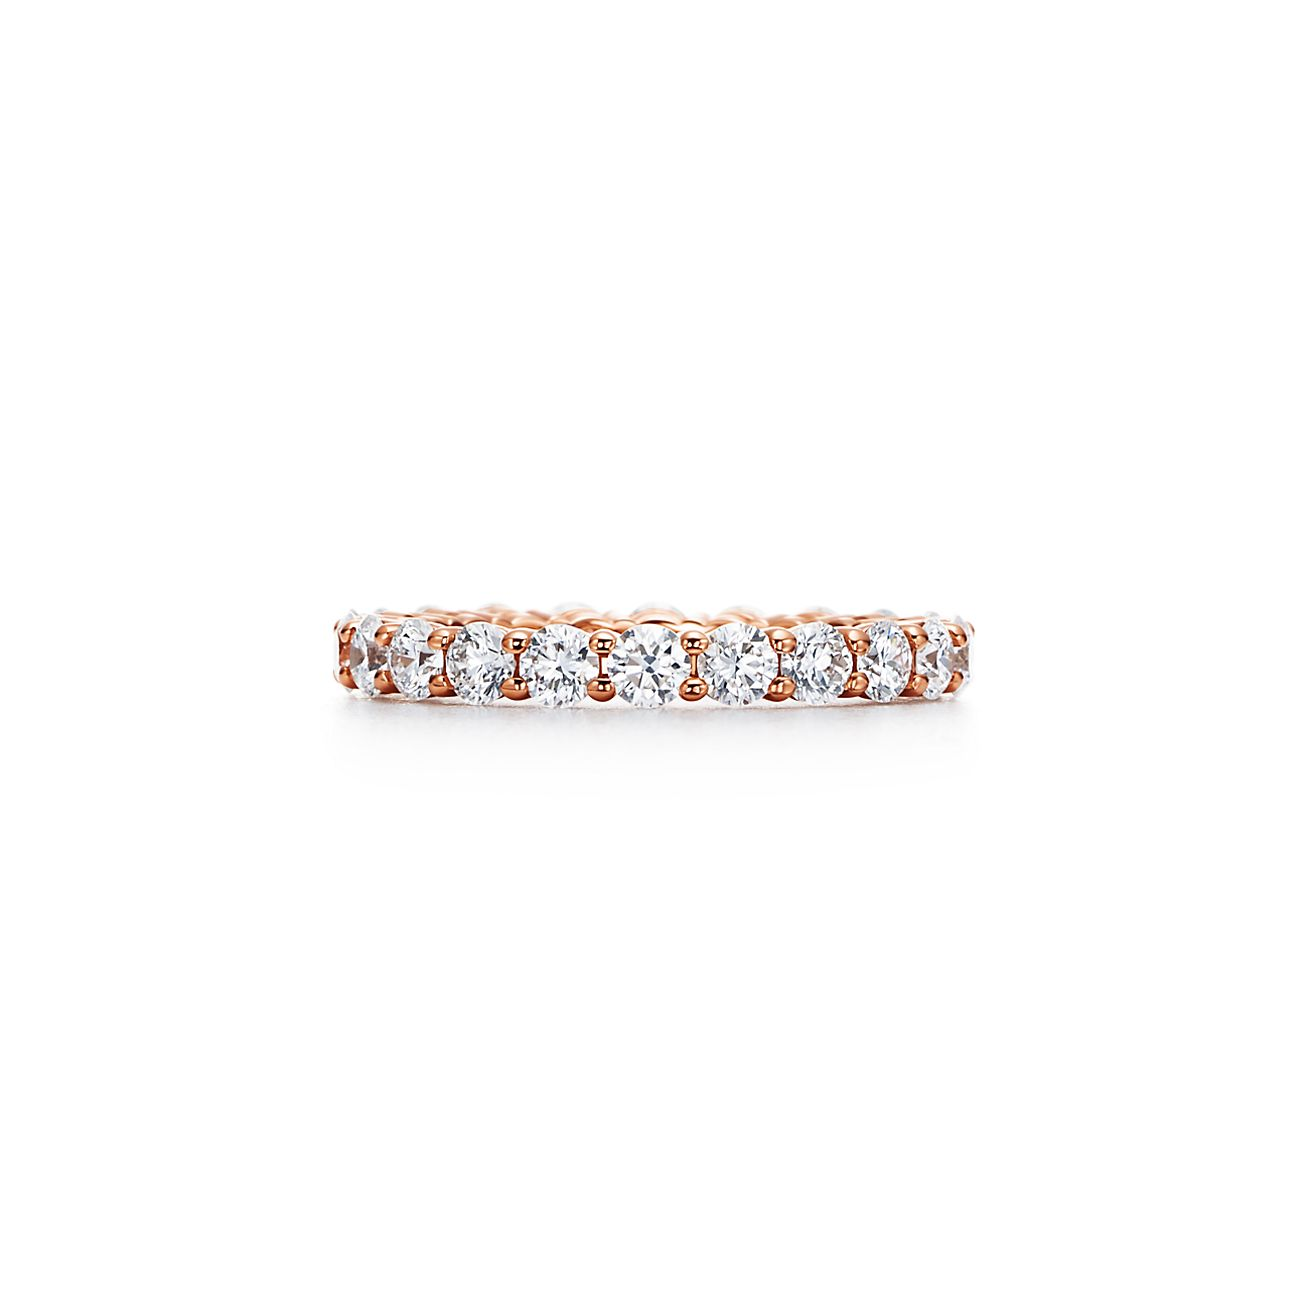 Tiffany Embrace Band Ring In 18k Rose Gold With Diamonds 3 Mm Wide